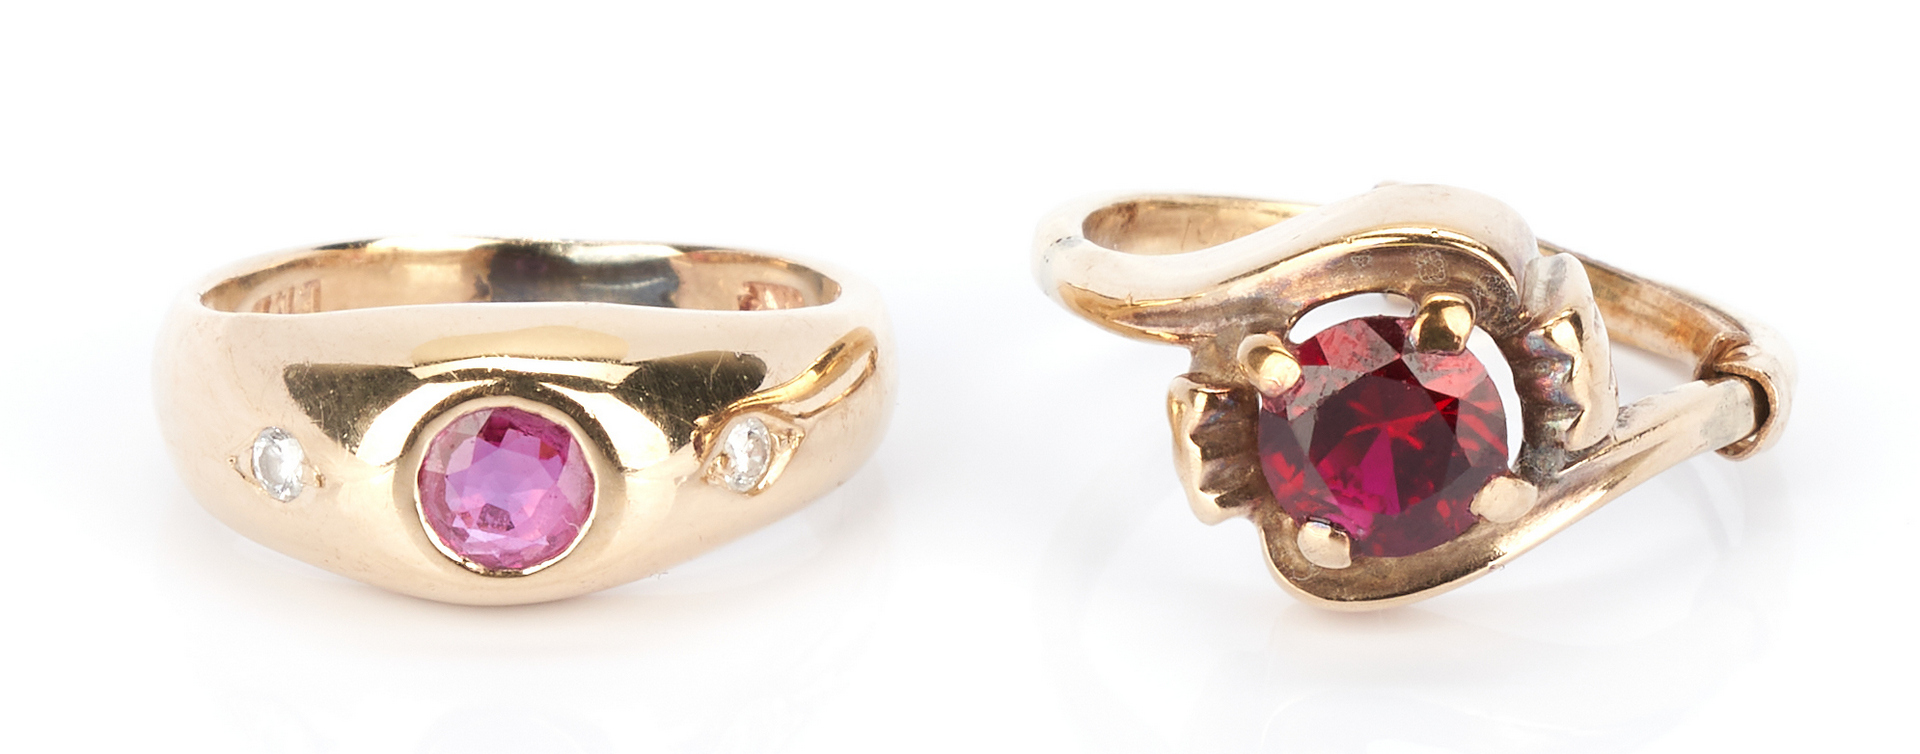 Lot 924: 5 Ladies 14K Ruby and Sapphire Rings